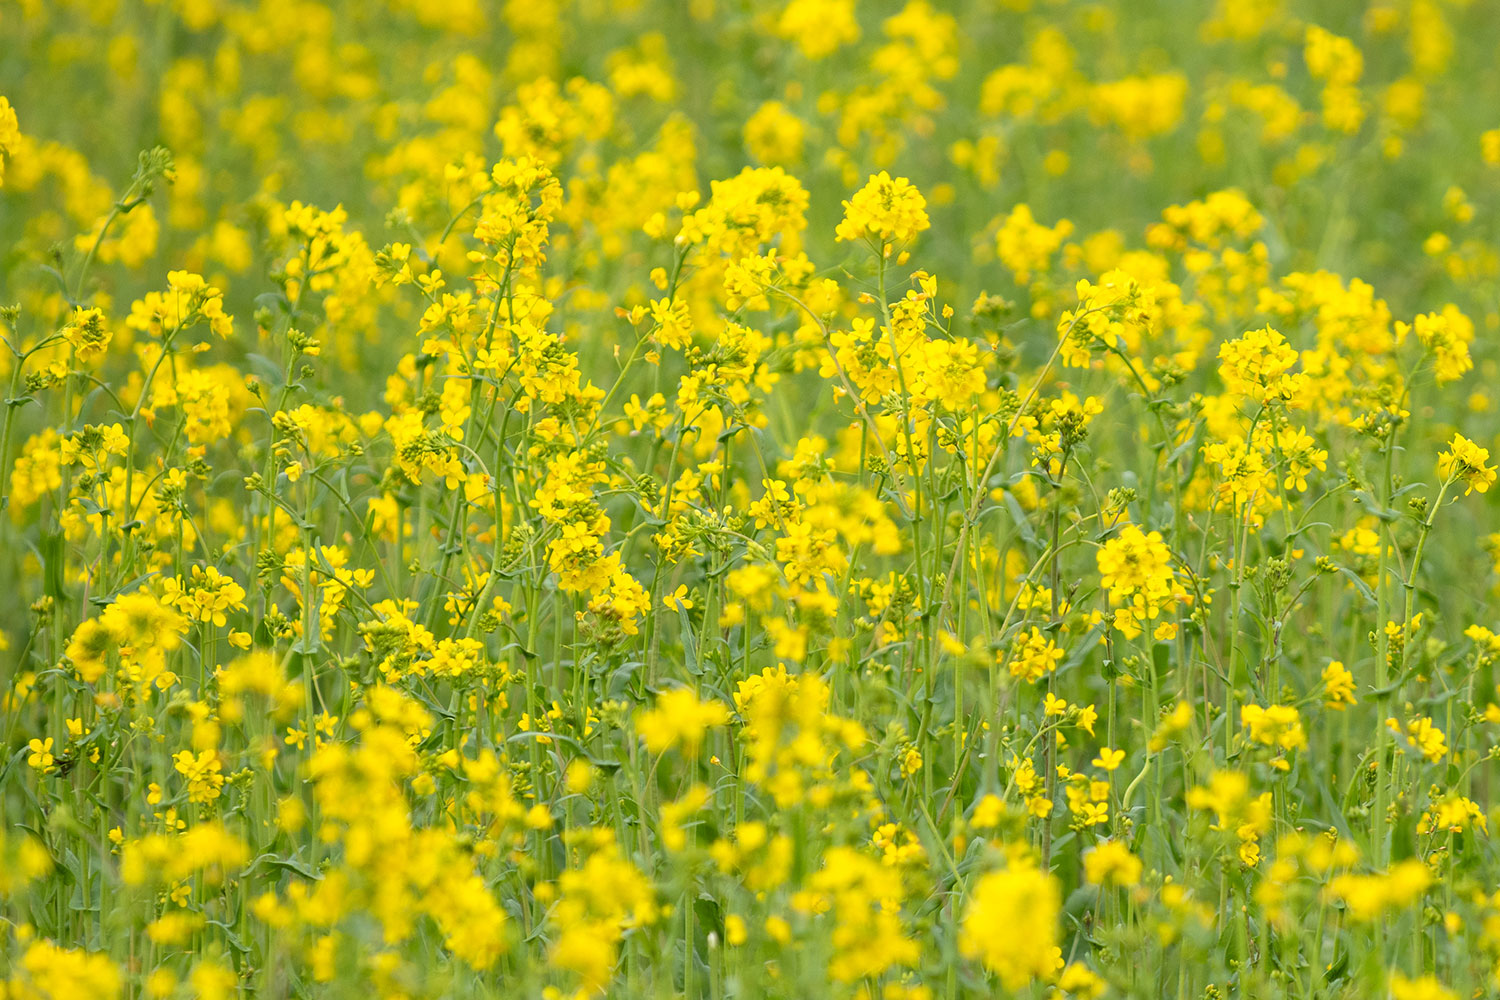 Wild patch of mustard blowing in the wind.